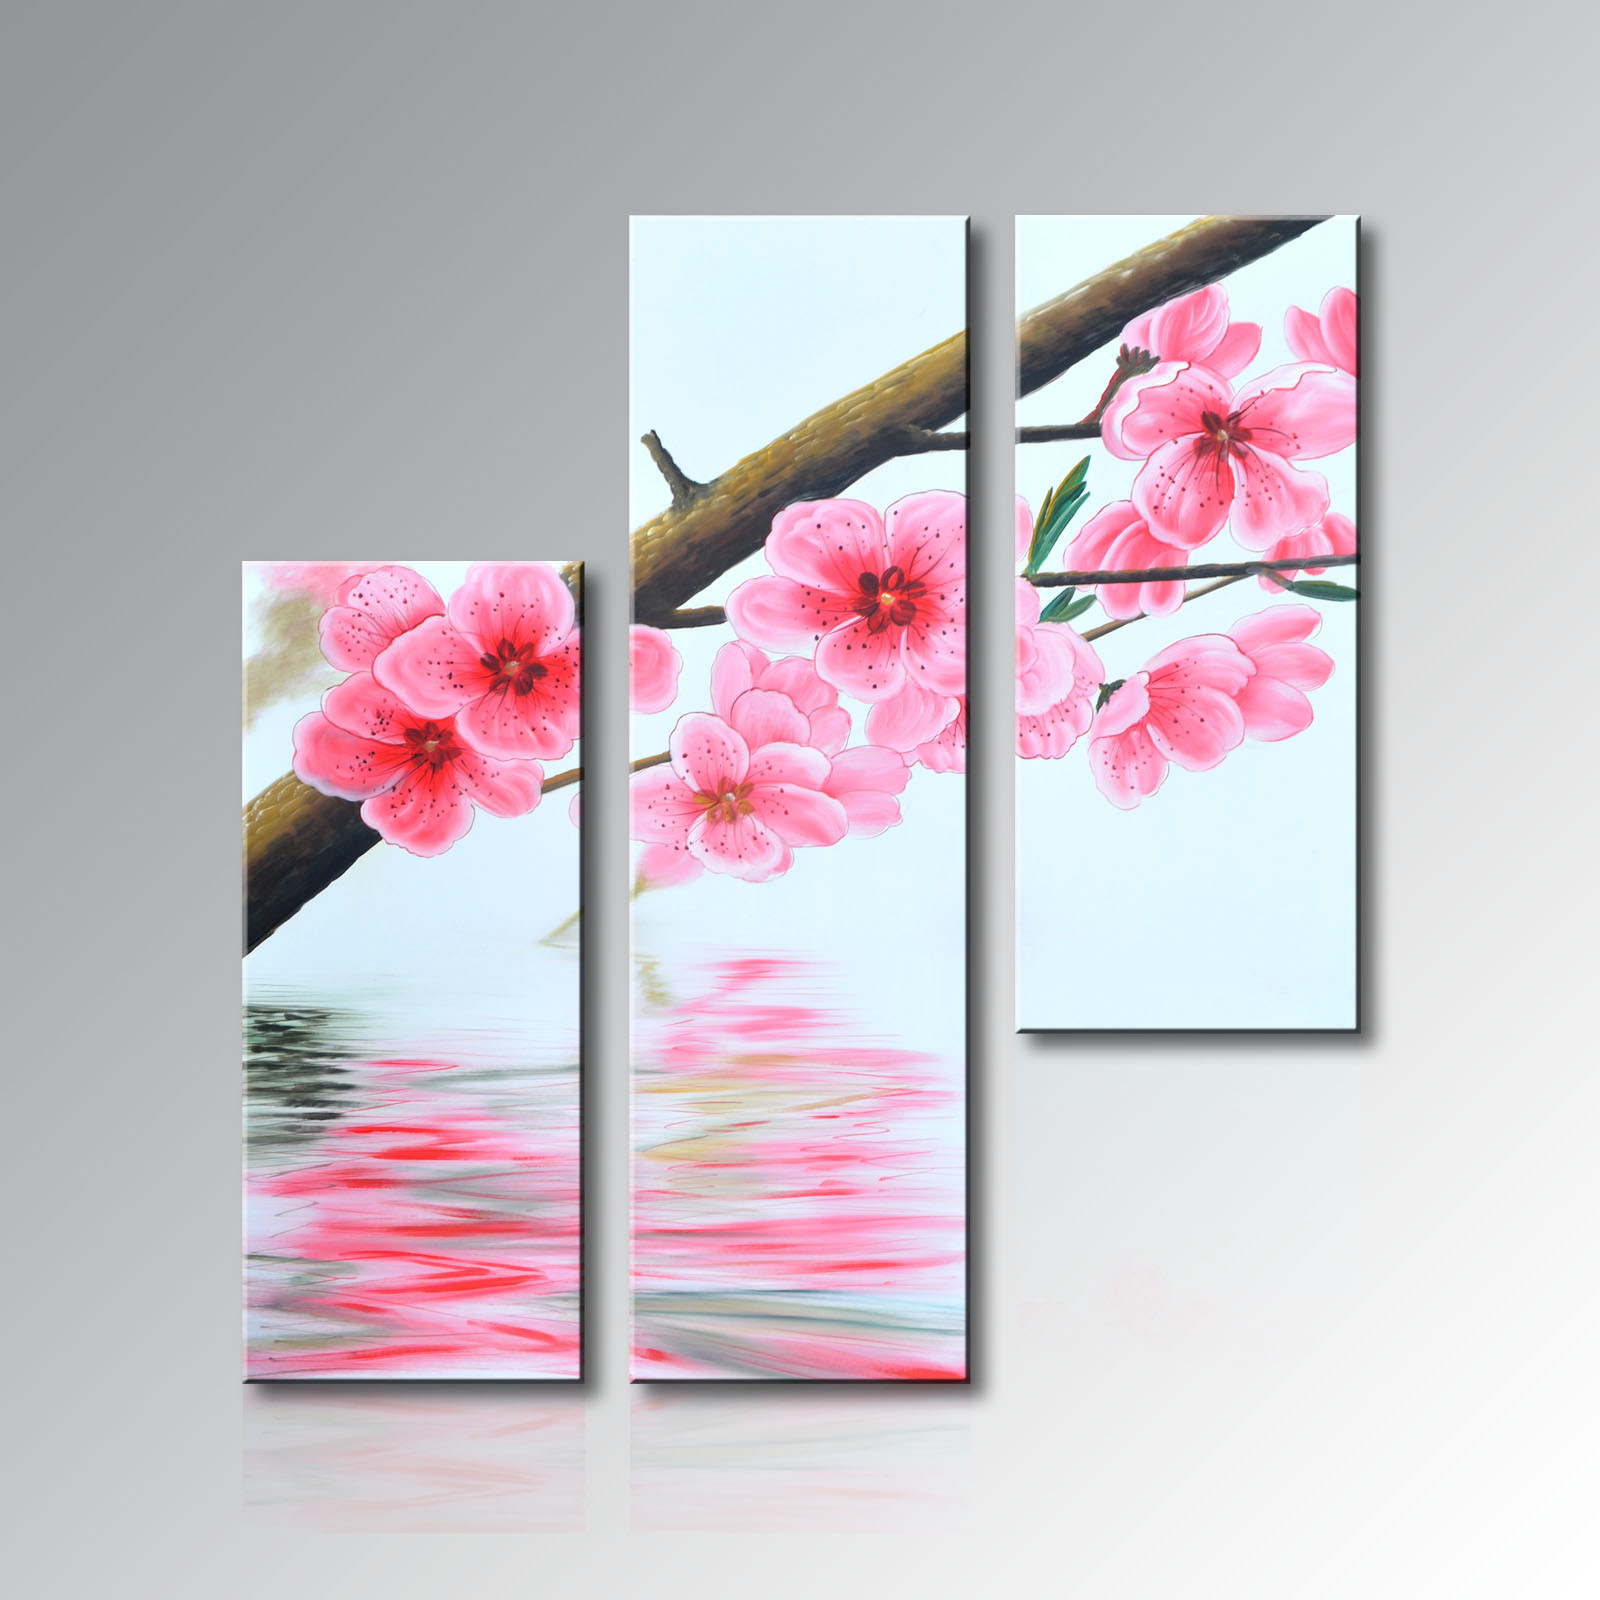 Handmade Realistic Flower Oil Painting on Canvas